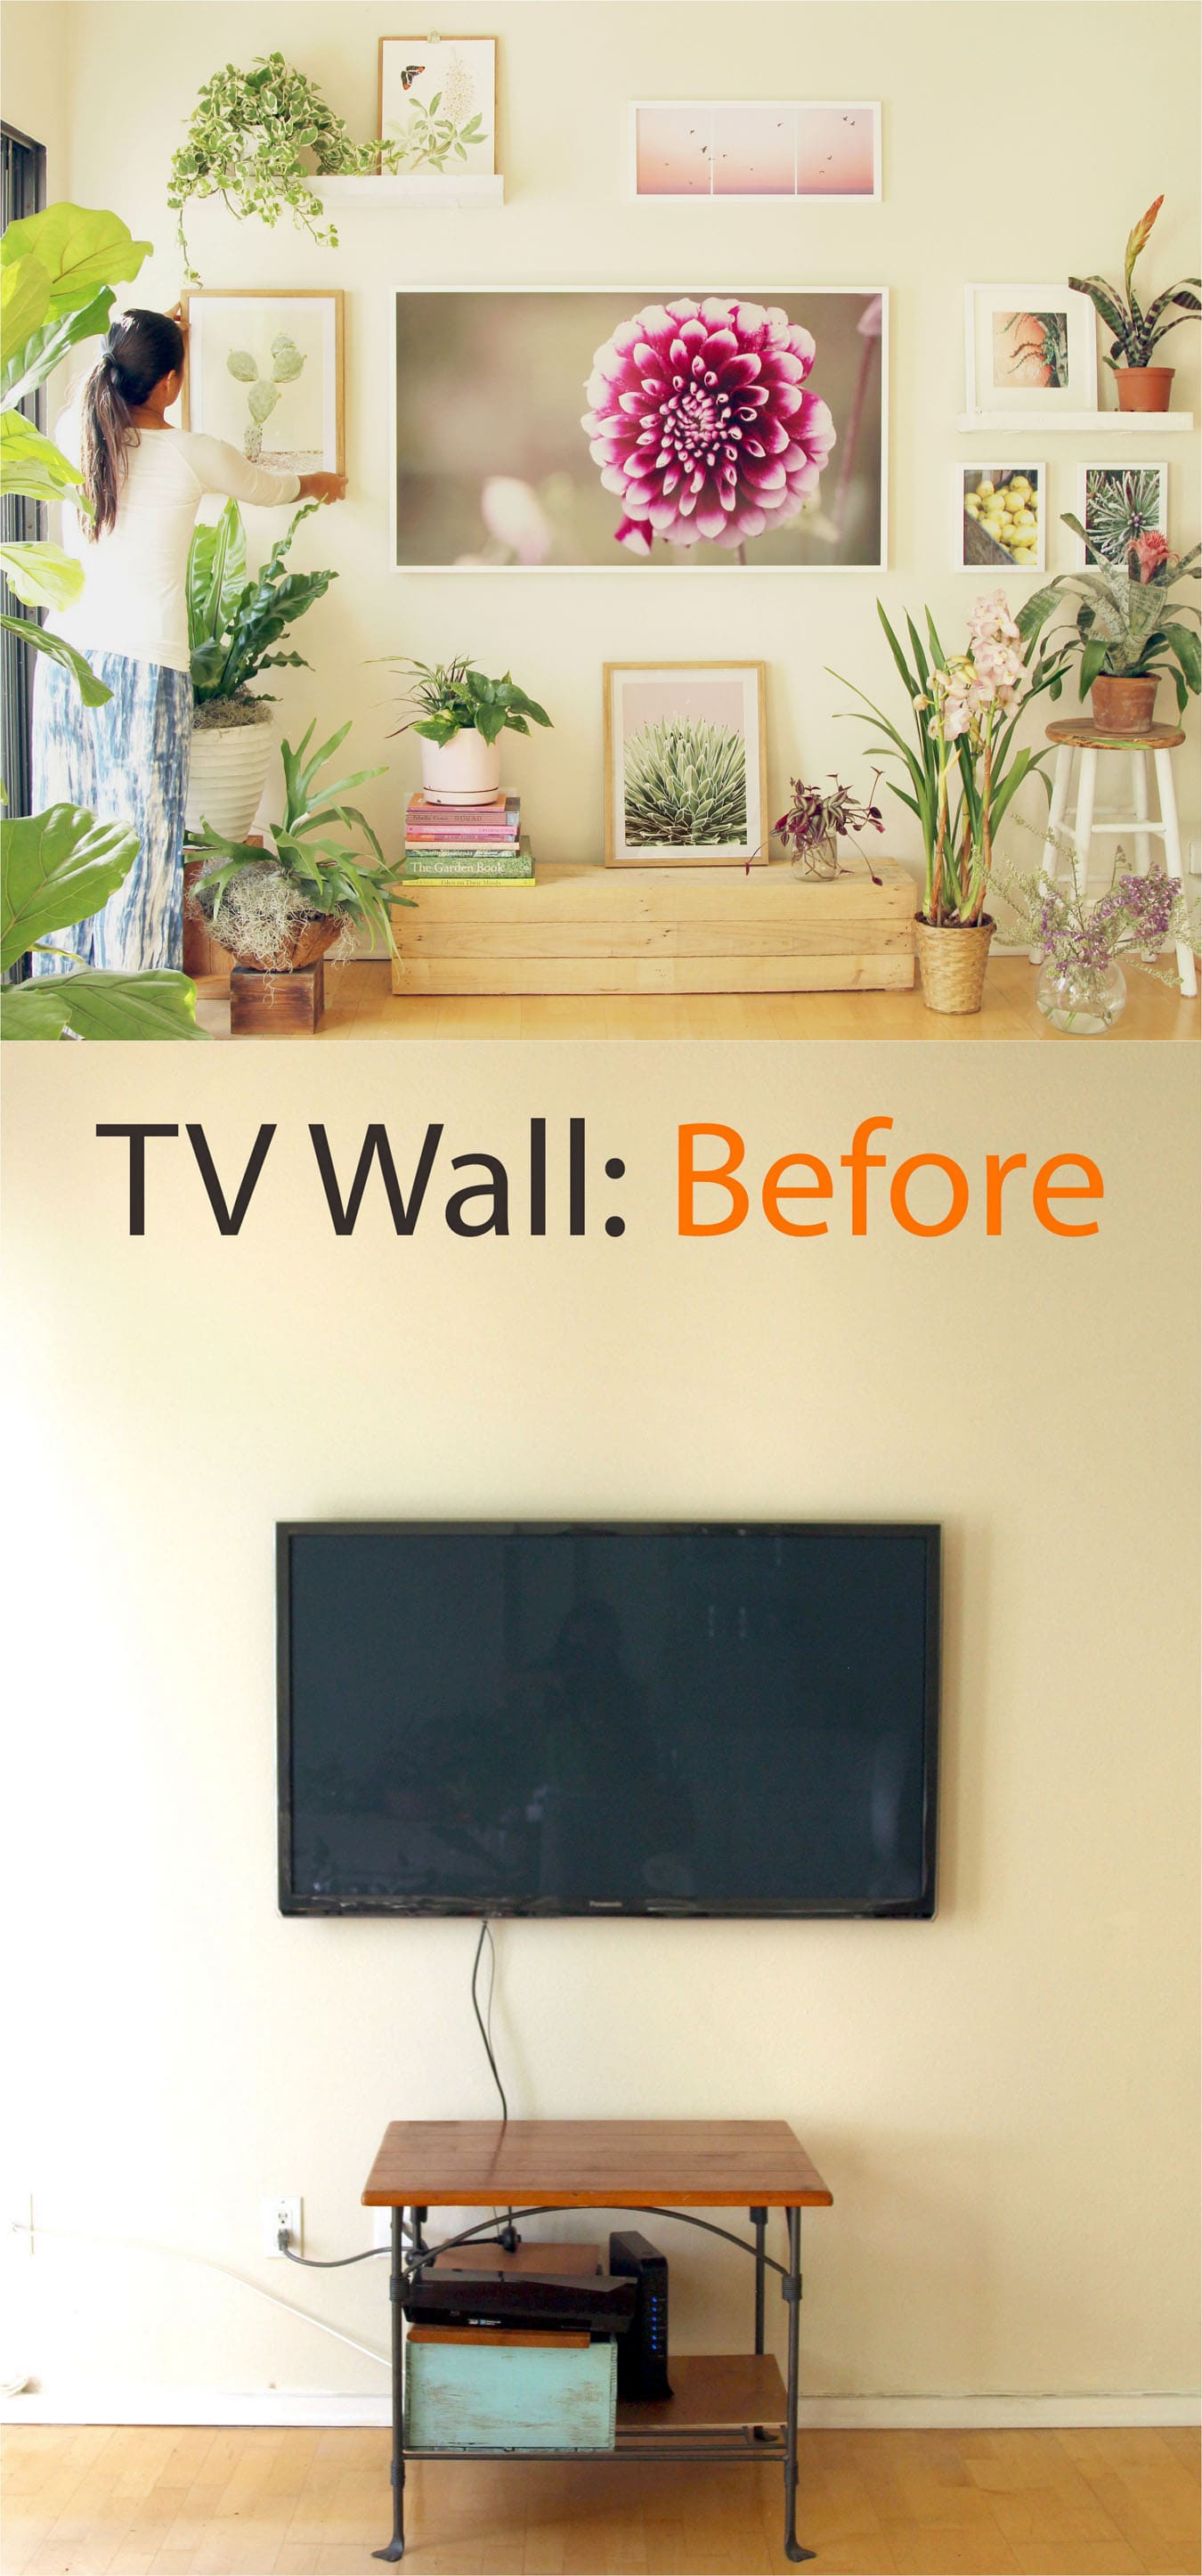 Tv wall to beautiful picture wall in 5 easy steps a piece of rainbow thank you so much samsung for sponsoring our tv picture wall makeover you can learn more about the frame tv here which will be 200 off the 55 and 65 jeuxipadfo Choice Image